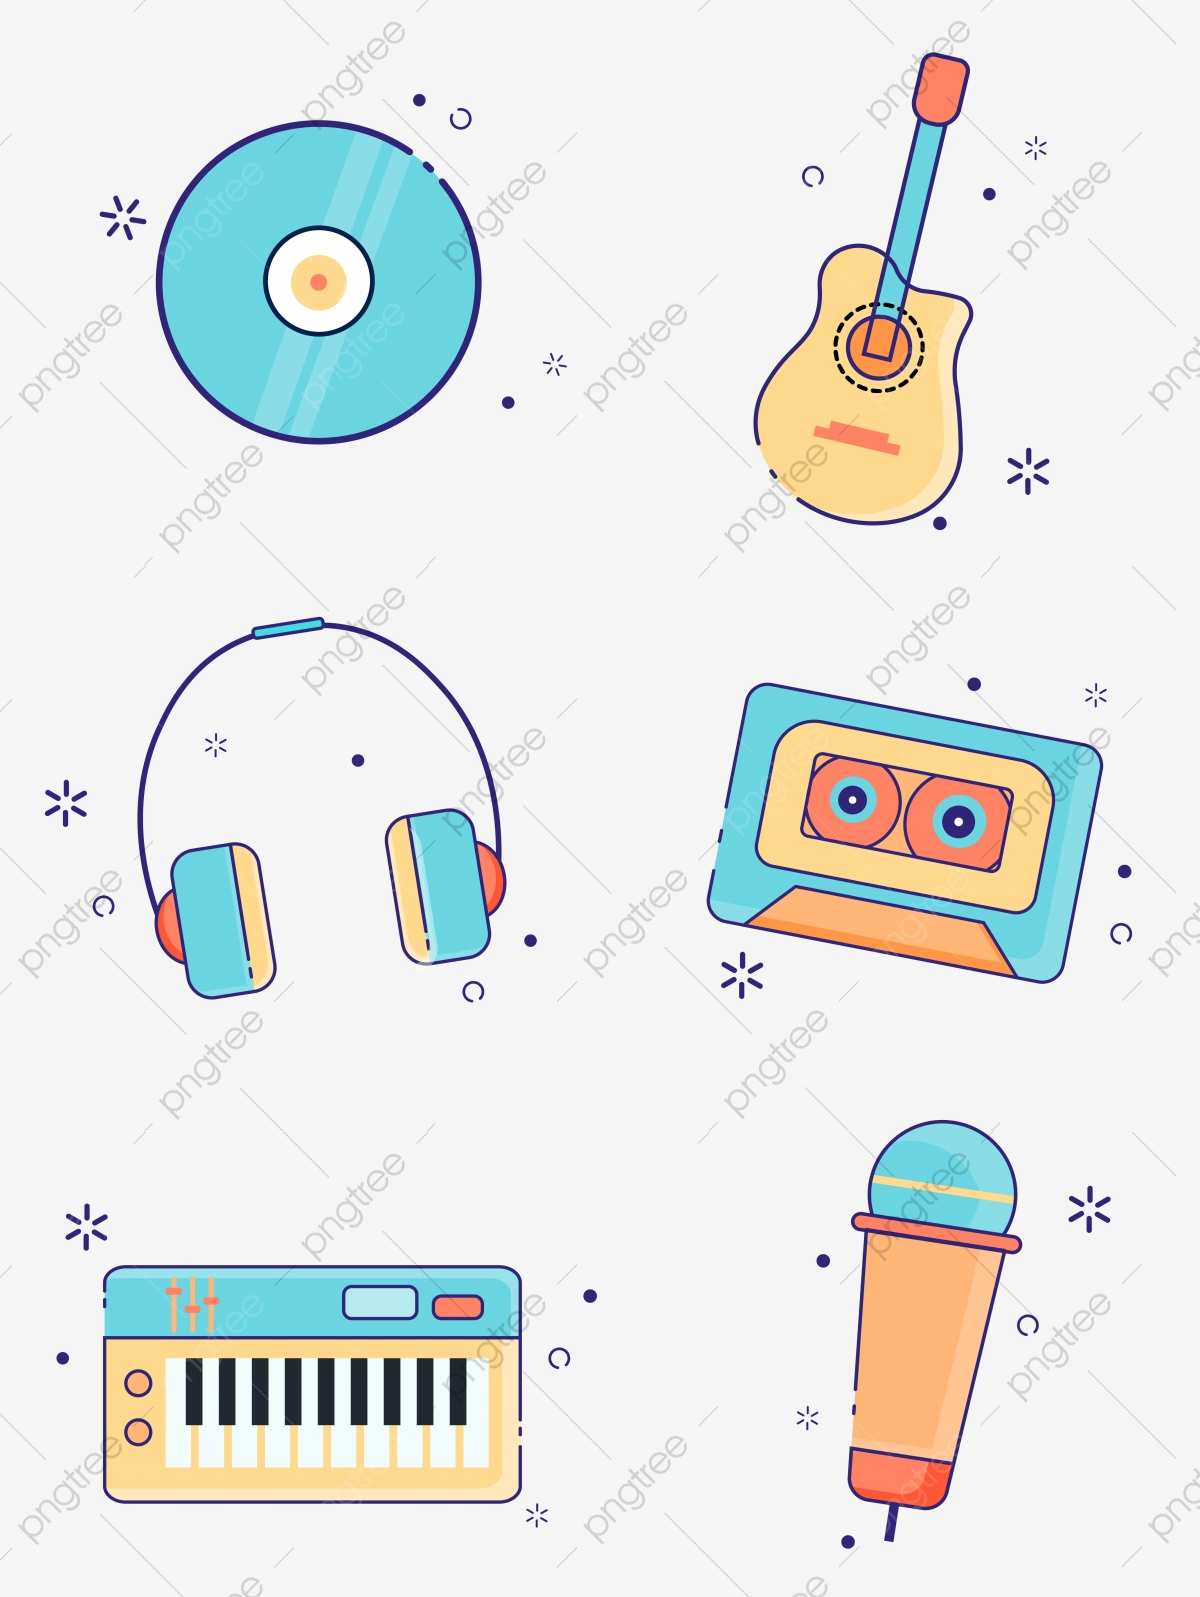 Mbe Cute Music Instrument Icon Design Cartoon Lovely Mbe Png And Vector With Transparent Background For Free Download